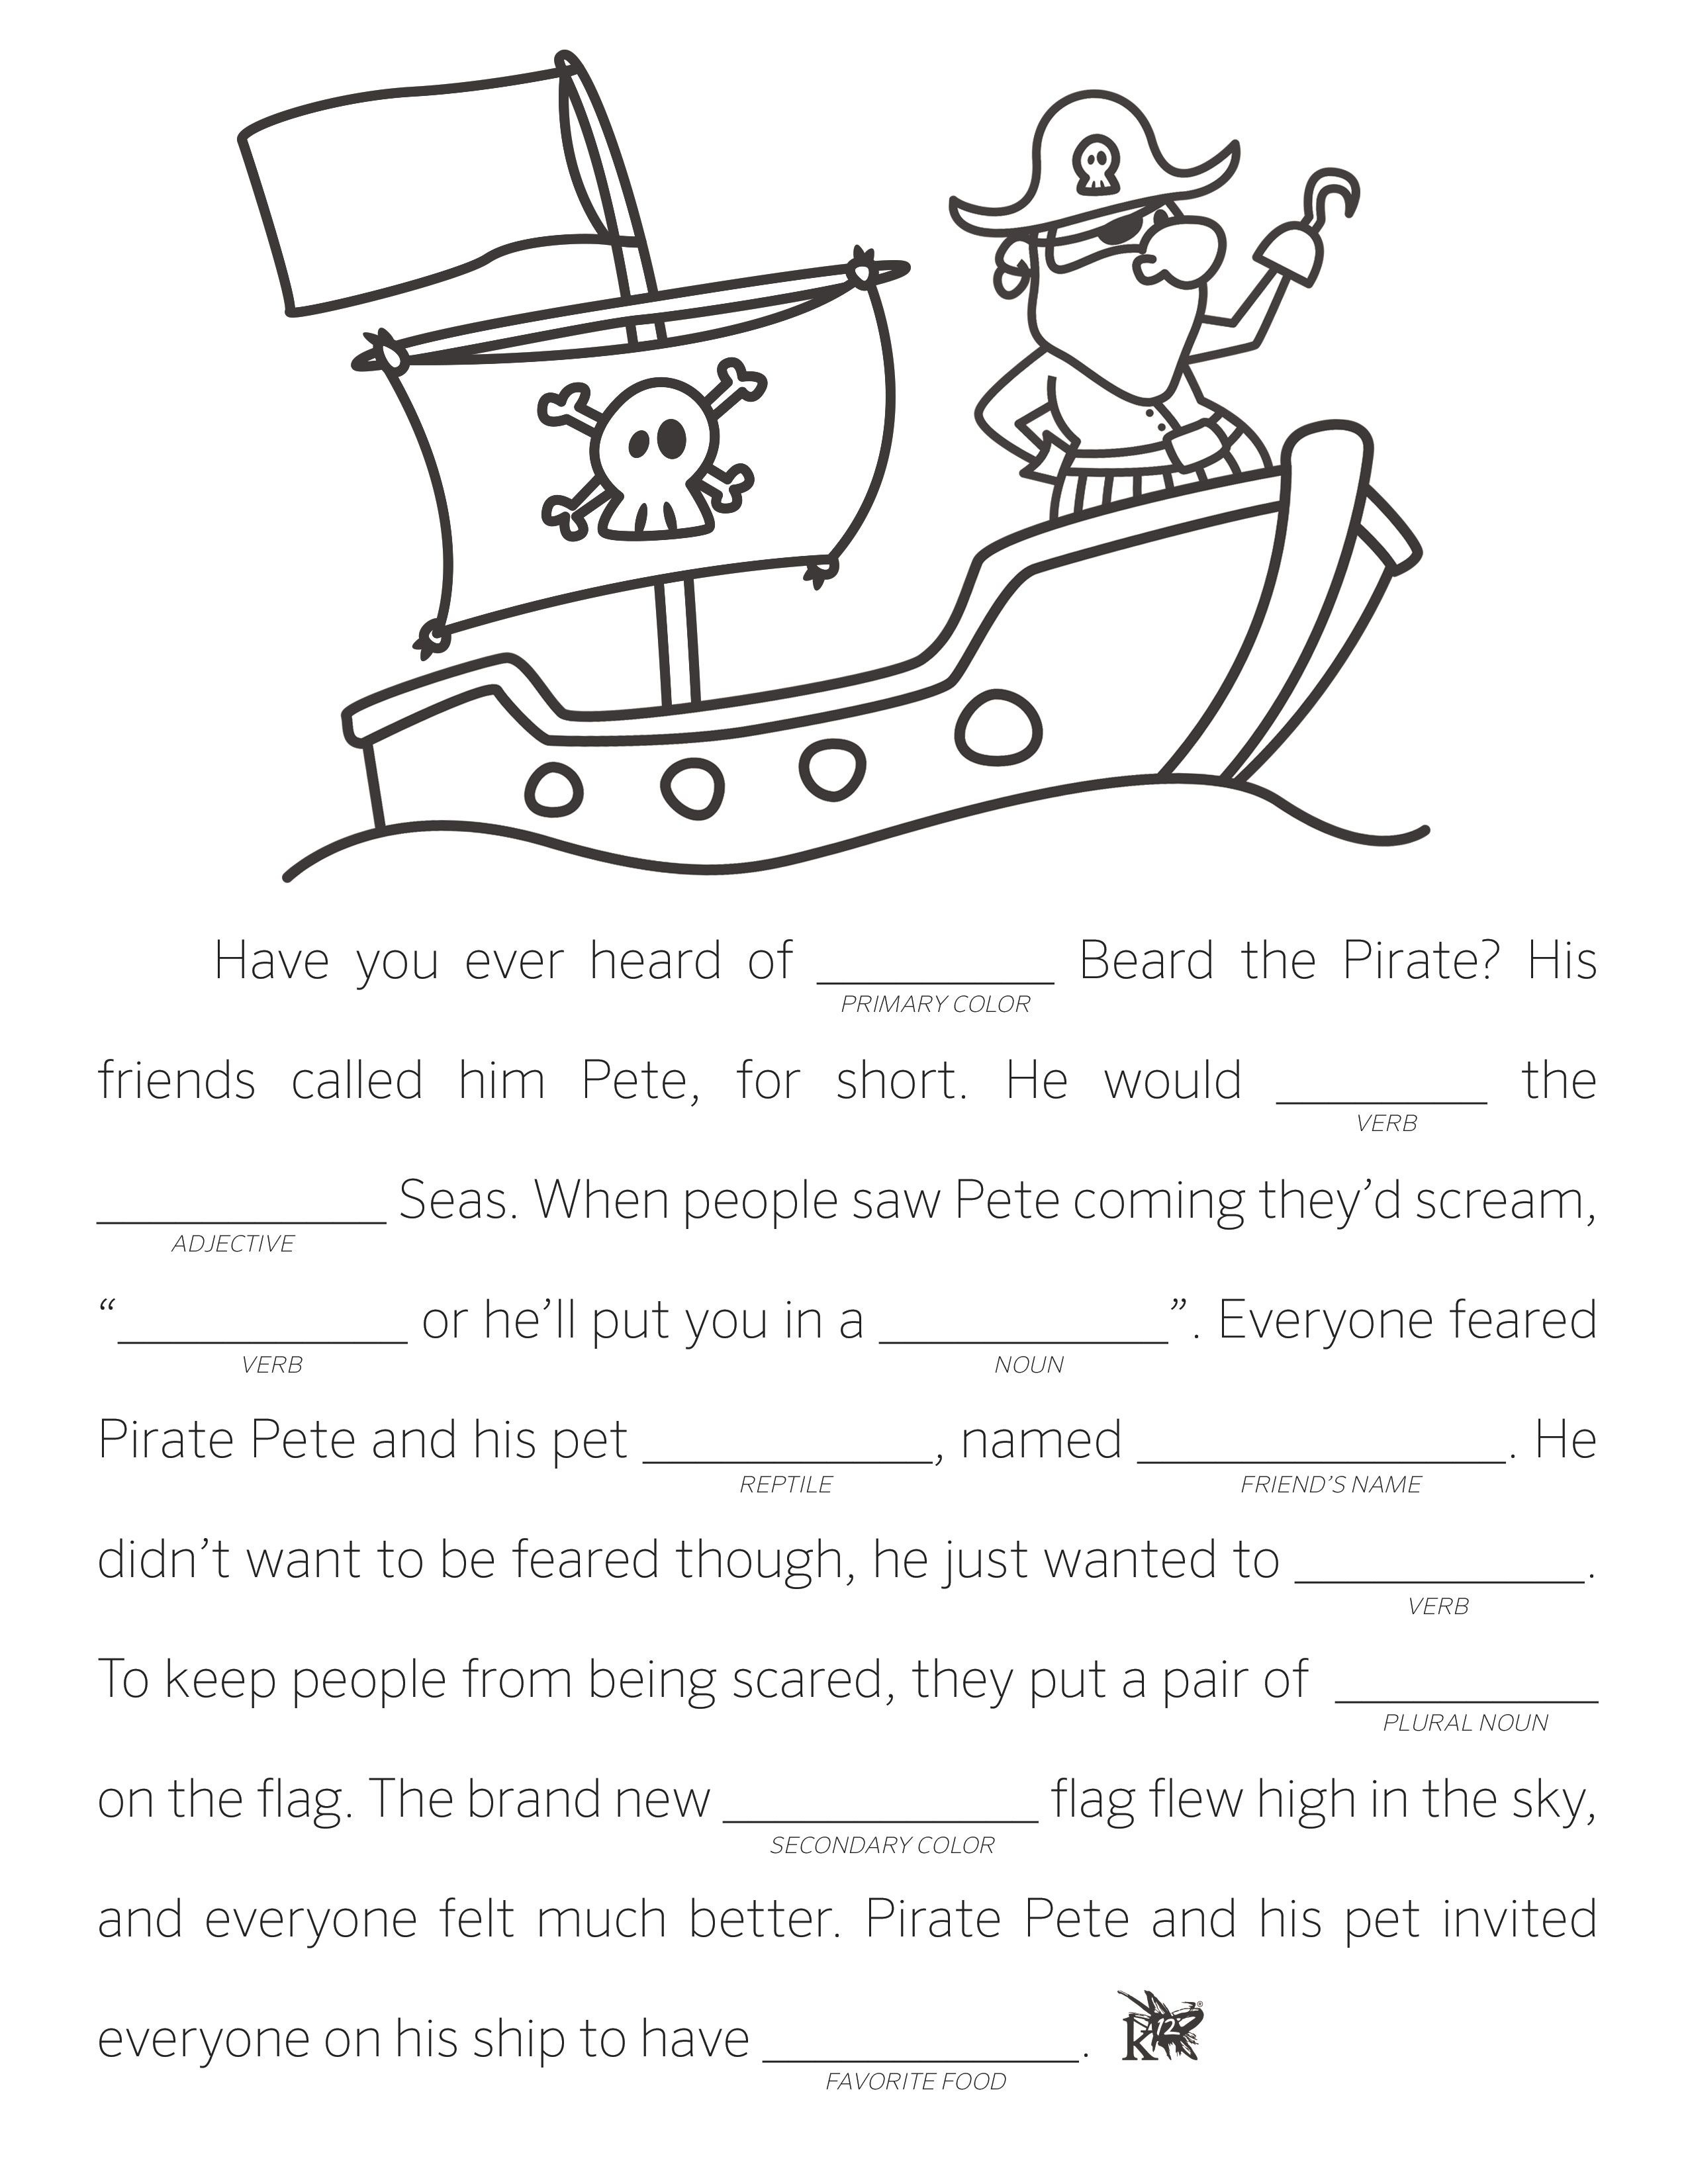 Make Your Own Fill In The Blank Stories | Language Arts Resources - Free Printable Stories For 4Th Graders